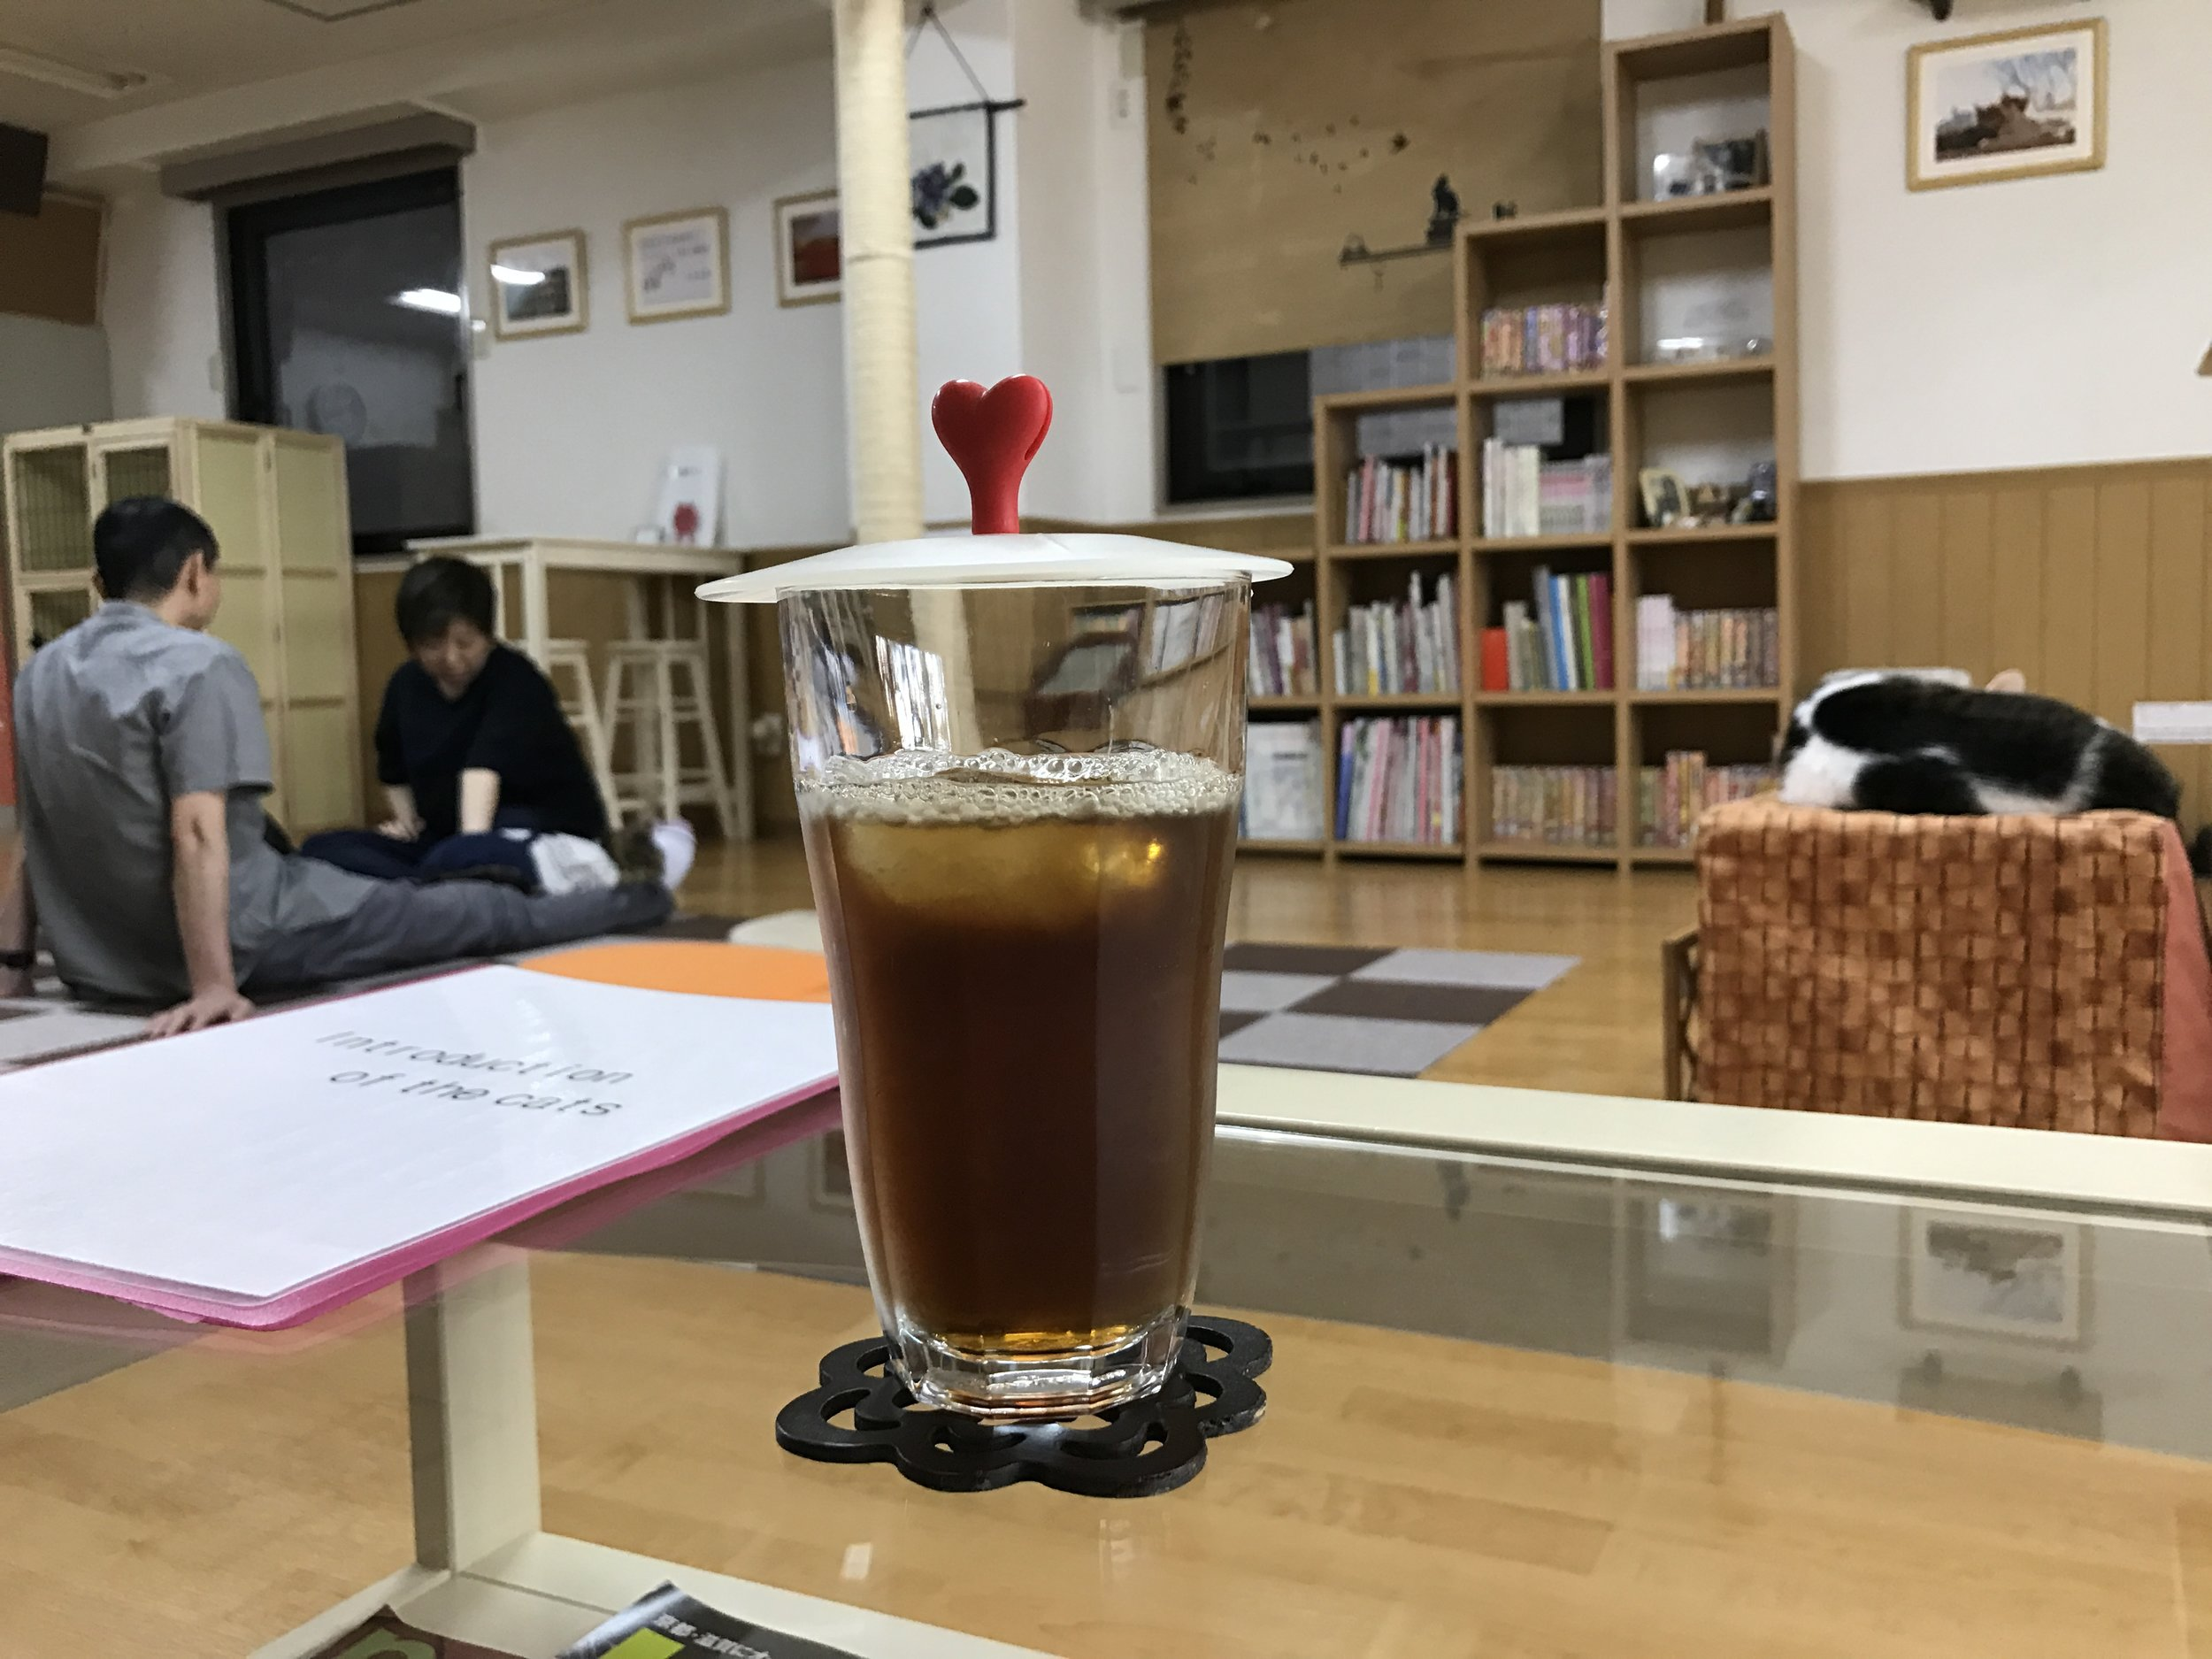 The cafe-style drinks are high quality at Cat Cafe Nekokaigi